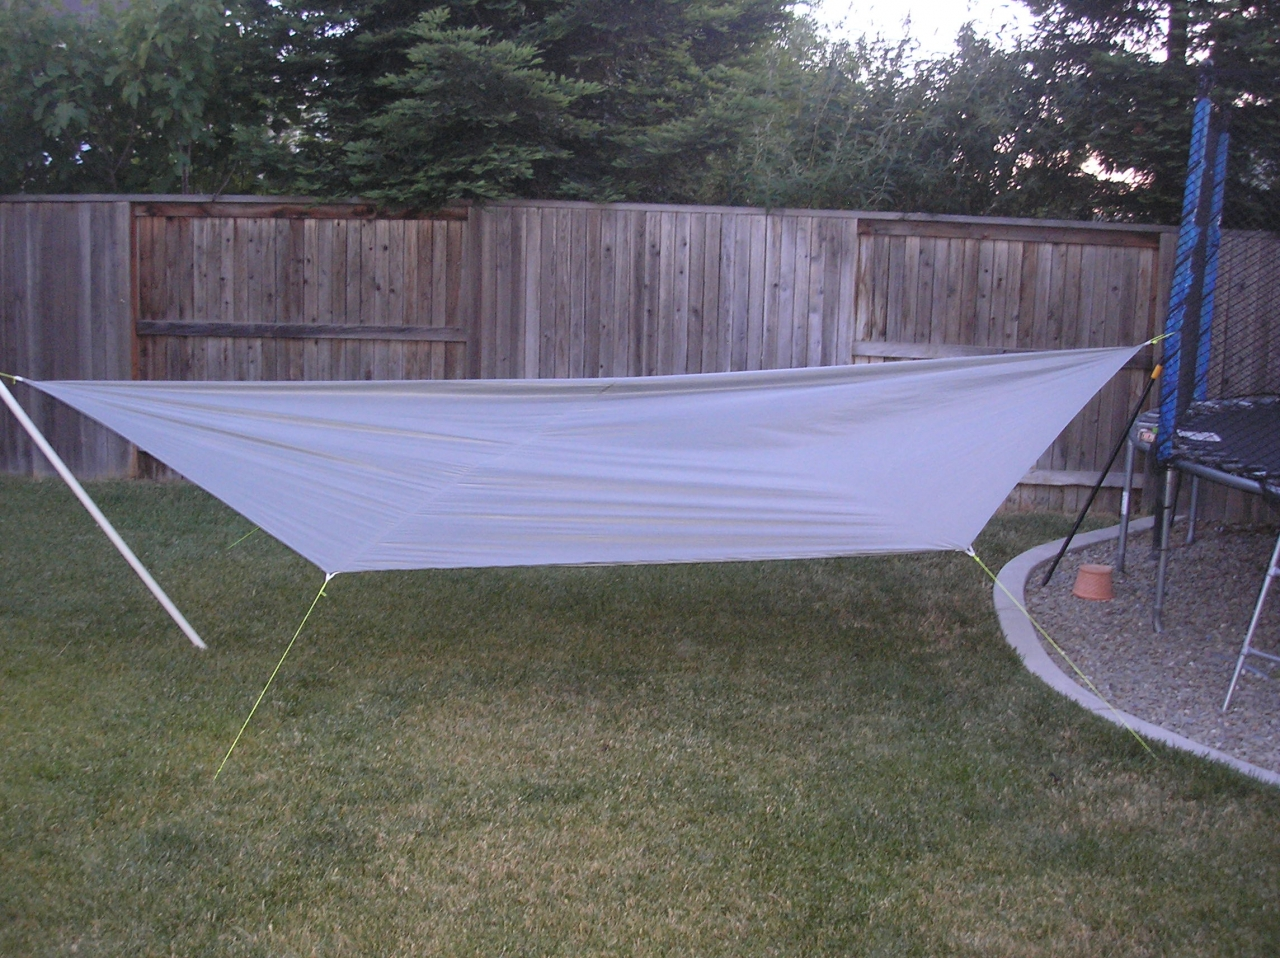 Pitched Tarp